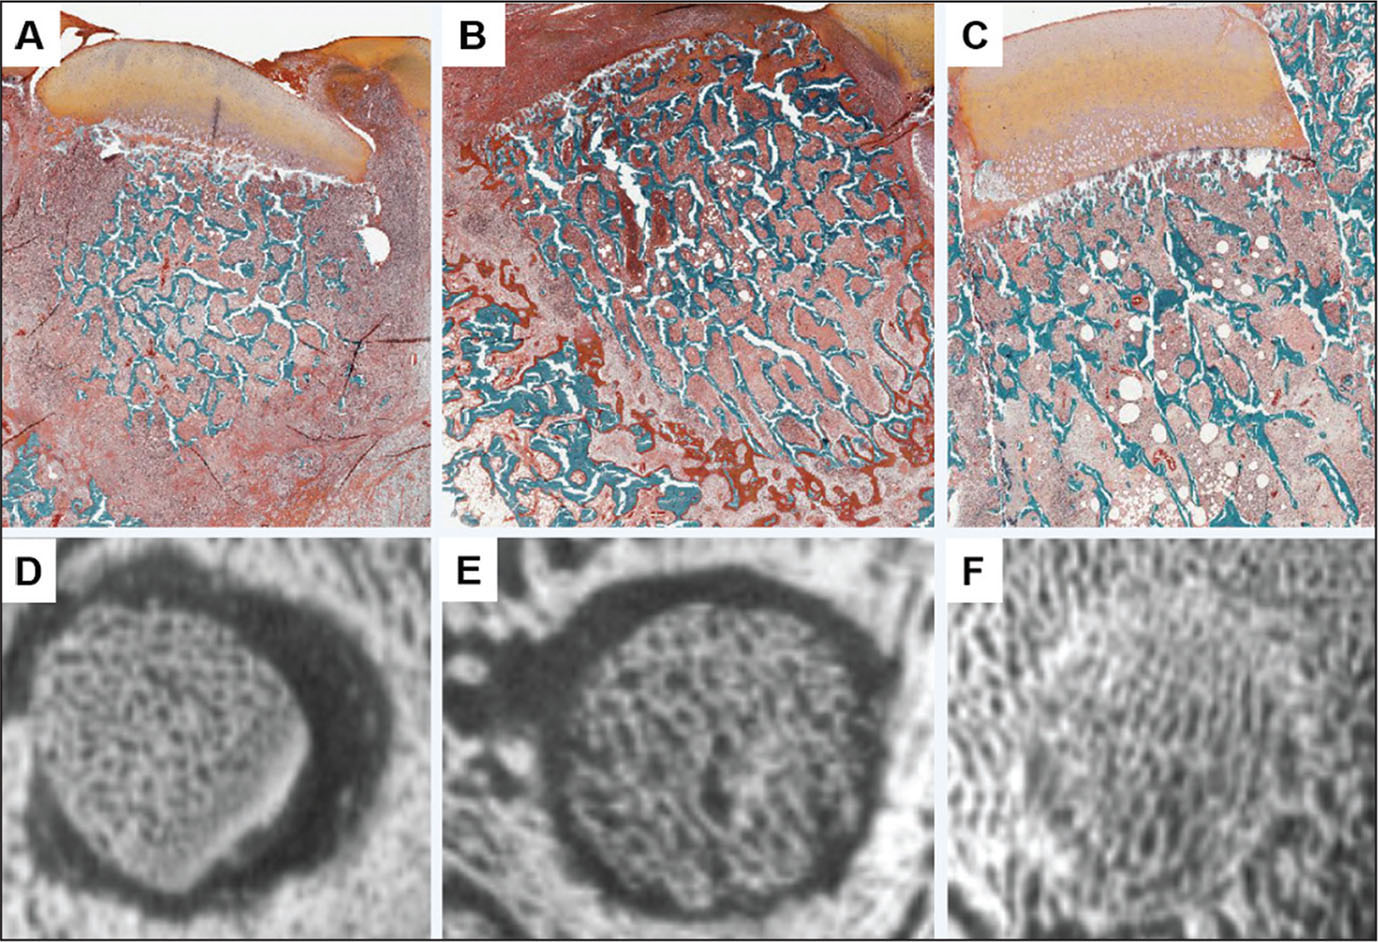 Safranin-O/Fast Green–stained decalcified histologic sections after 6 weeks of transplantation in miniature swine after grafts were stored in media alone (control) (A), etidronate-supplemented storage media (B), or risedronate-supplemented storage media (C) (all original magnification ×1.2). Corresponding µCT imaging of grafts stored in media alone (control) (D), etidronate-supplemented storage media (E), or risedronate-supplemented storage media (F).